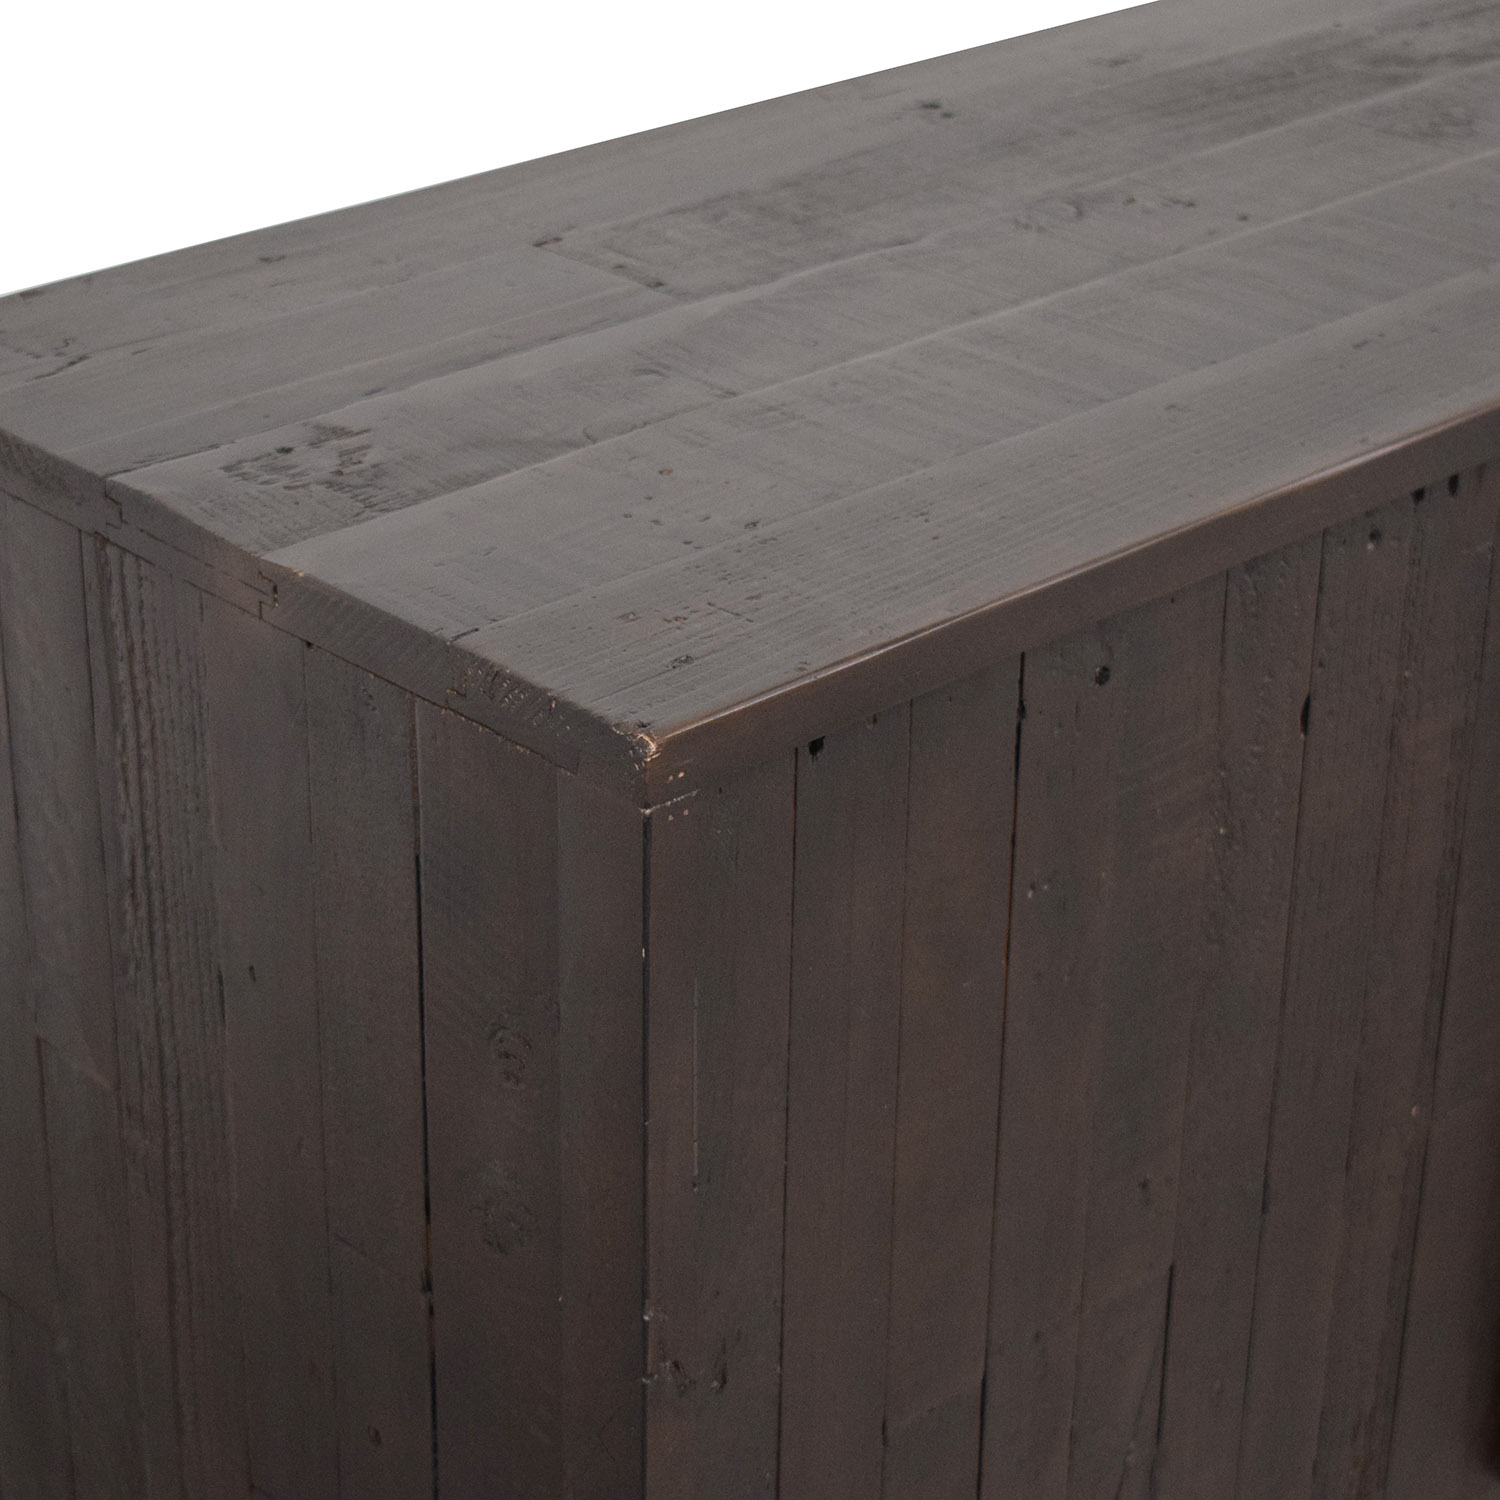 Four Hands Four Hands Reclaimed Wood Sideboard used